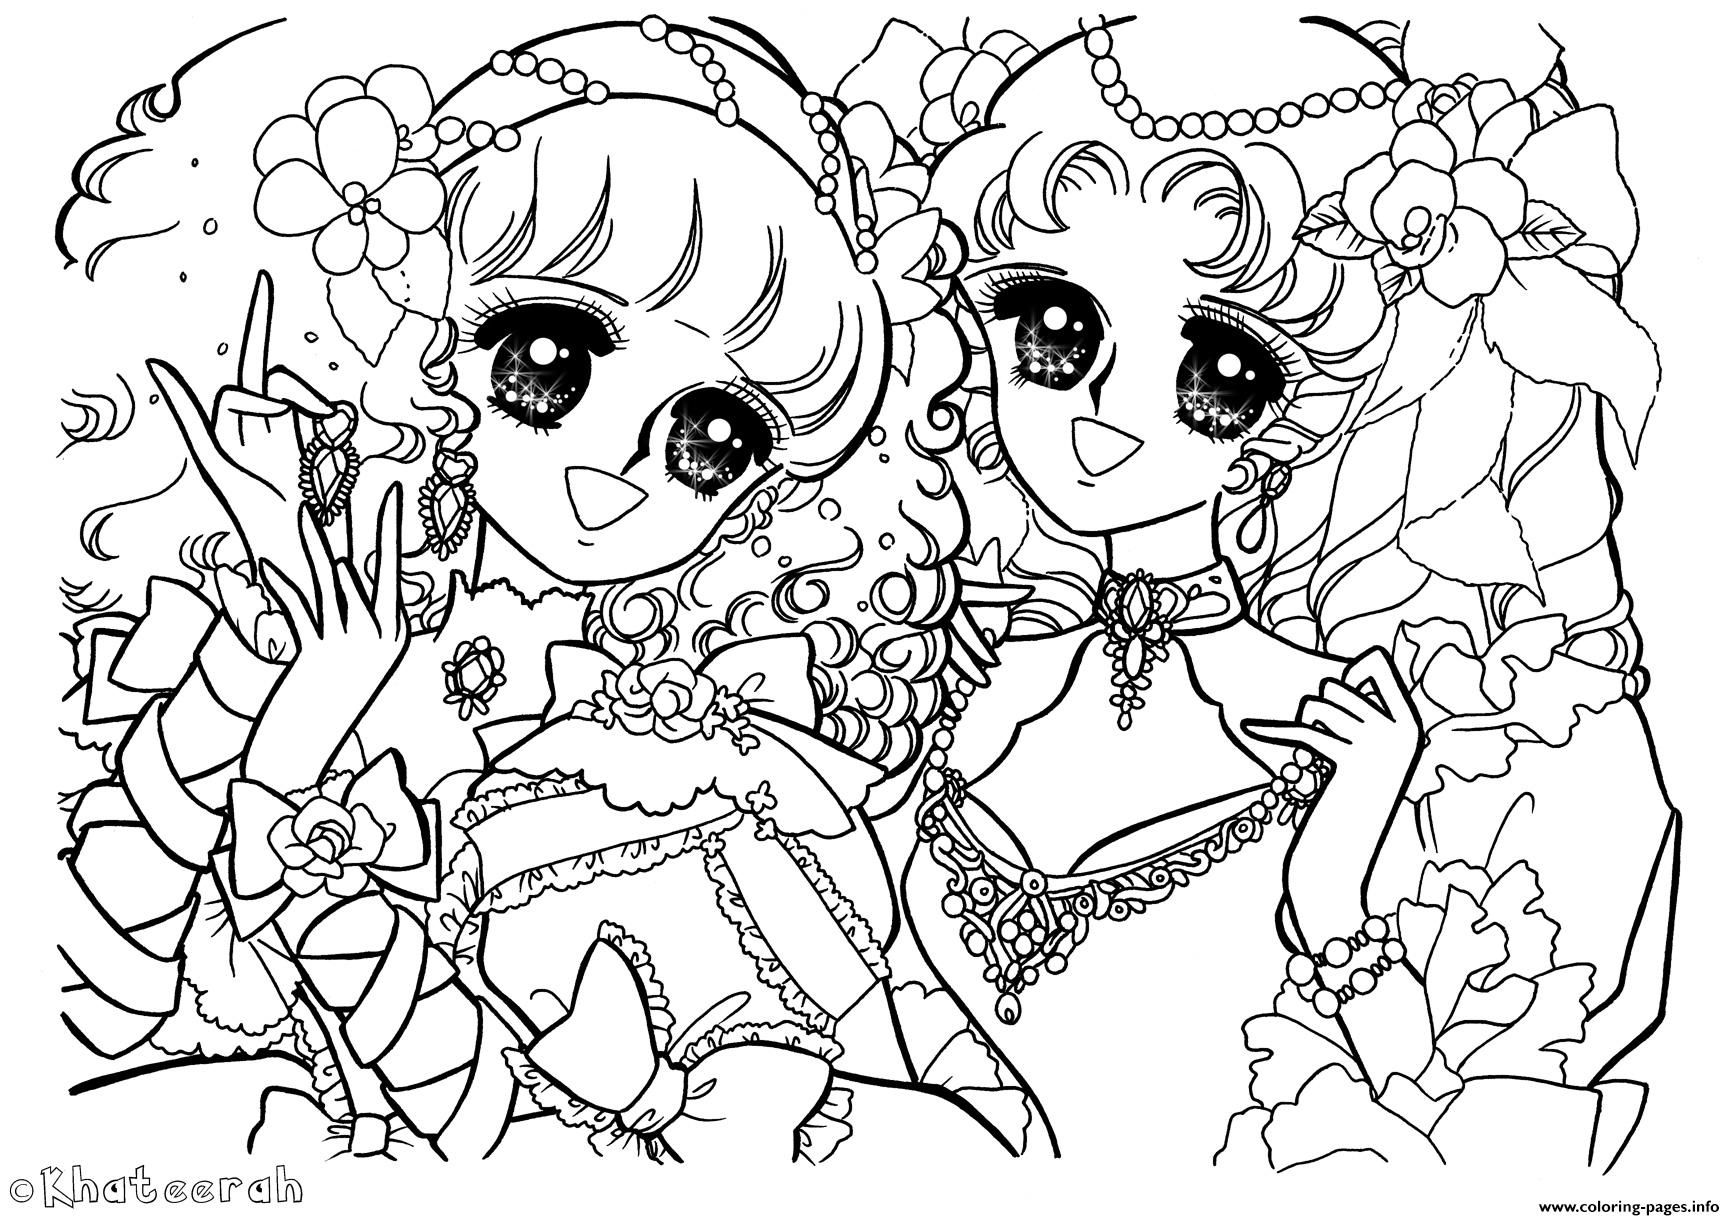 Glitter Force Anime Girls coloring pages